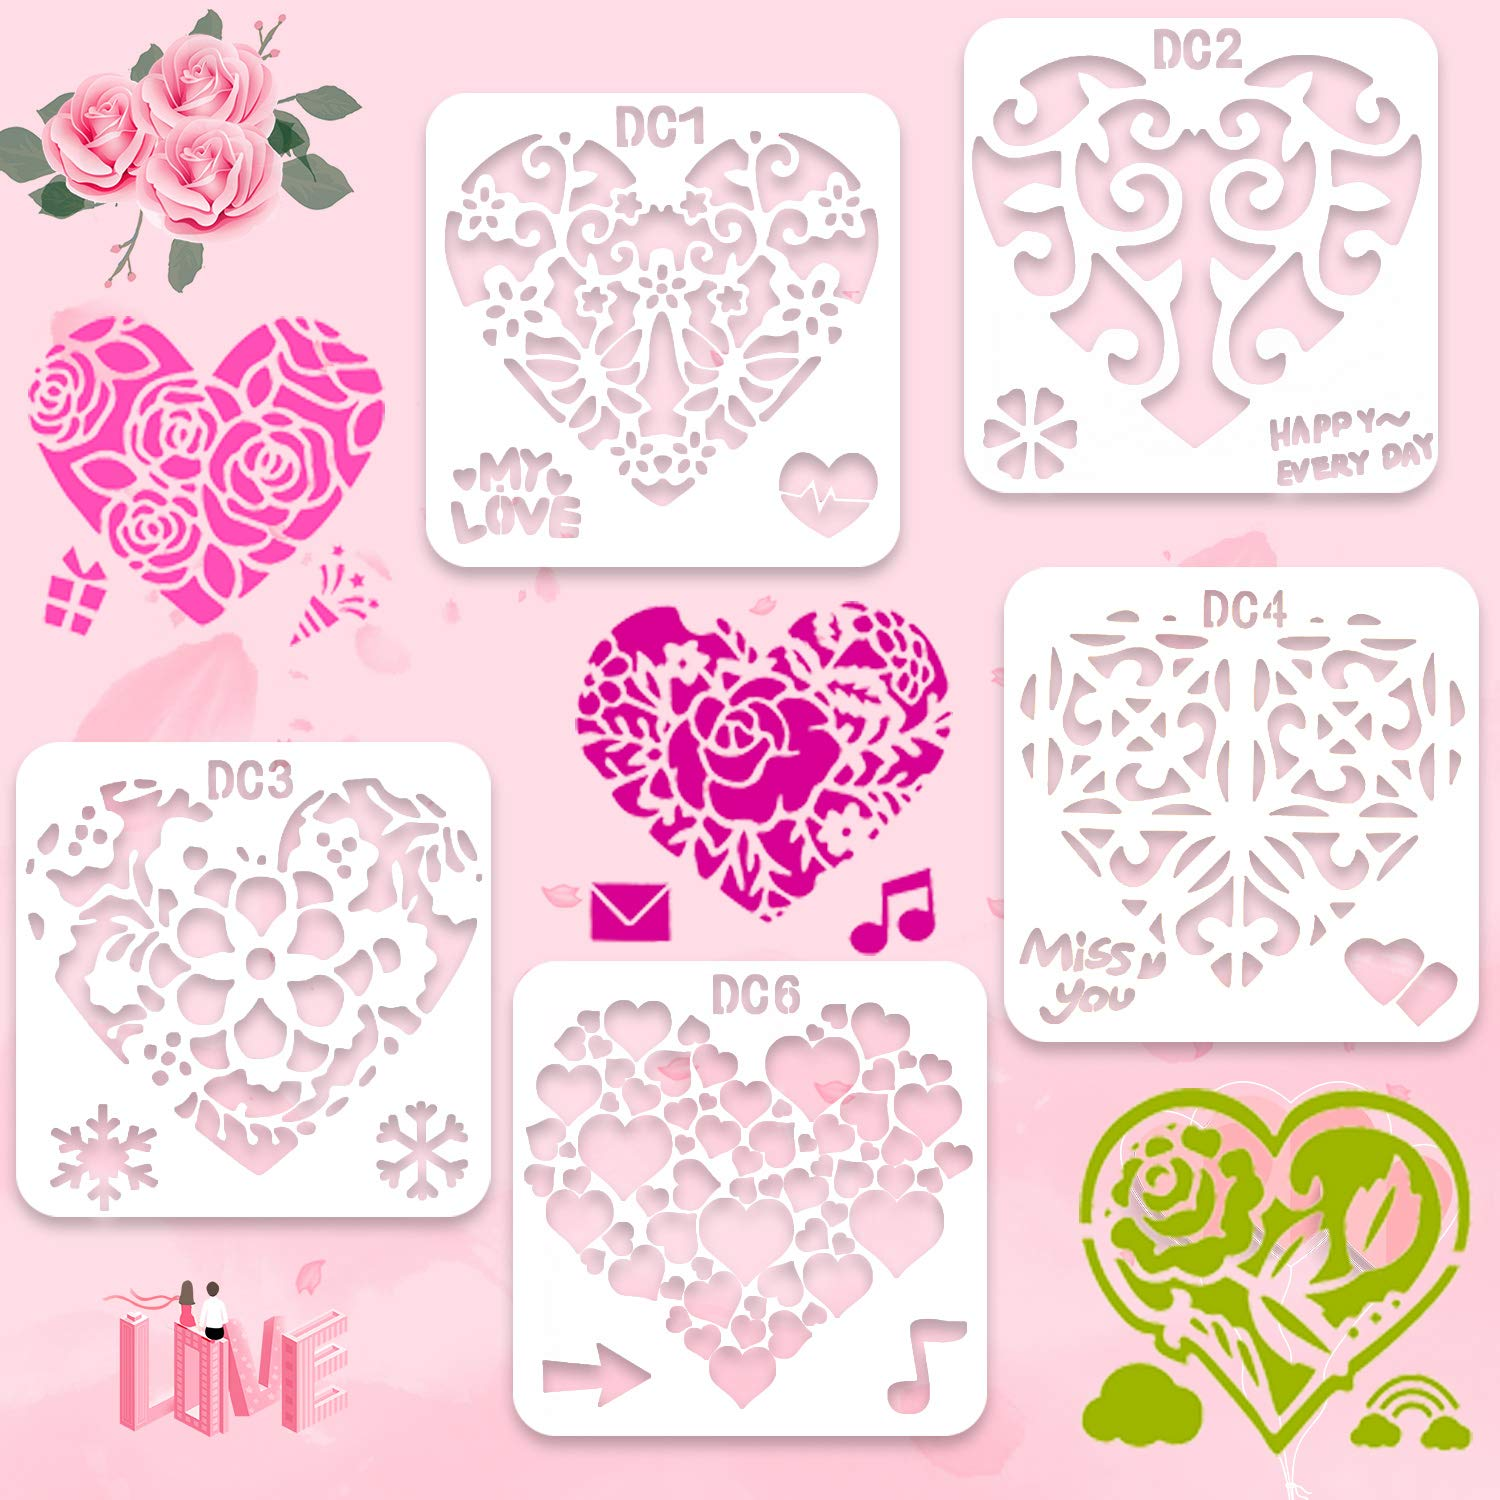 Plastic Reusable Stencils Templates for Painting Drawing DIY Art Project Wedding HOWAF 11pcs Flower Lace Love Heart Tree Leaf Stencils Templates Set for Crafting Wedding Valentines Day